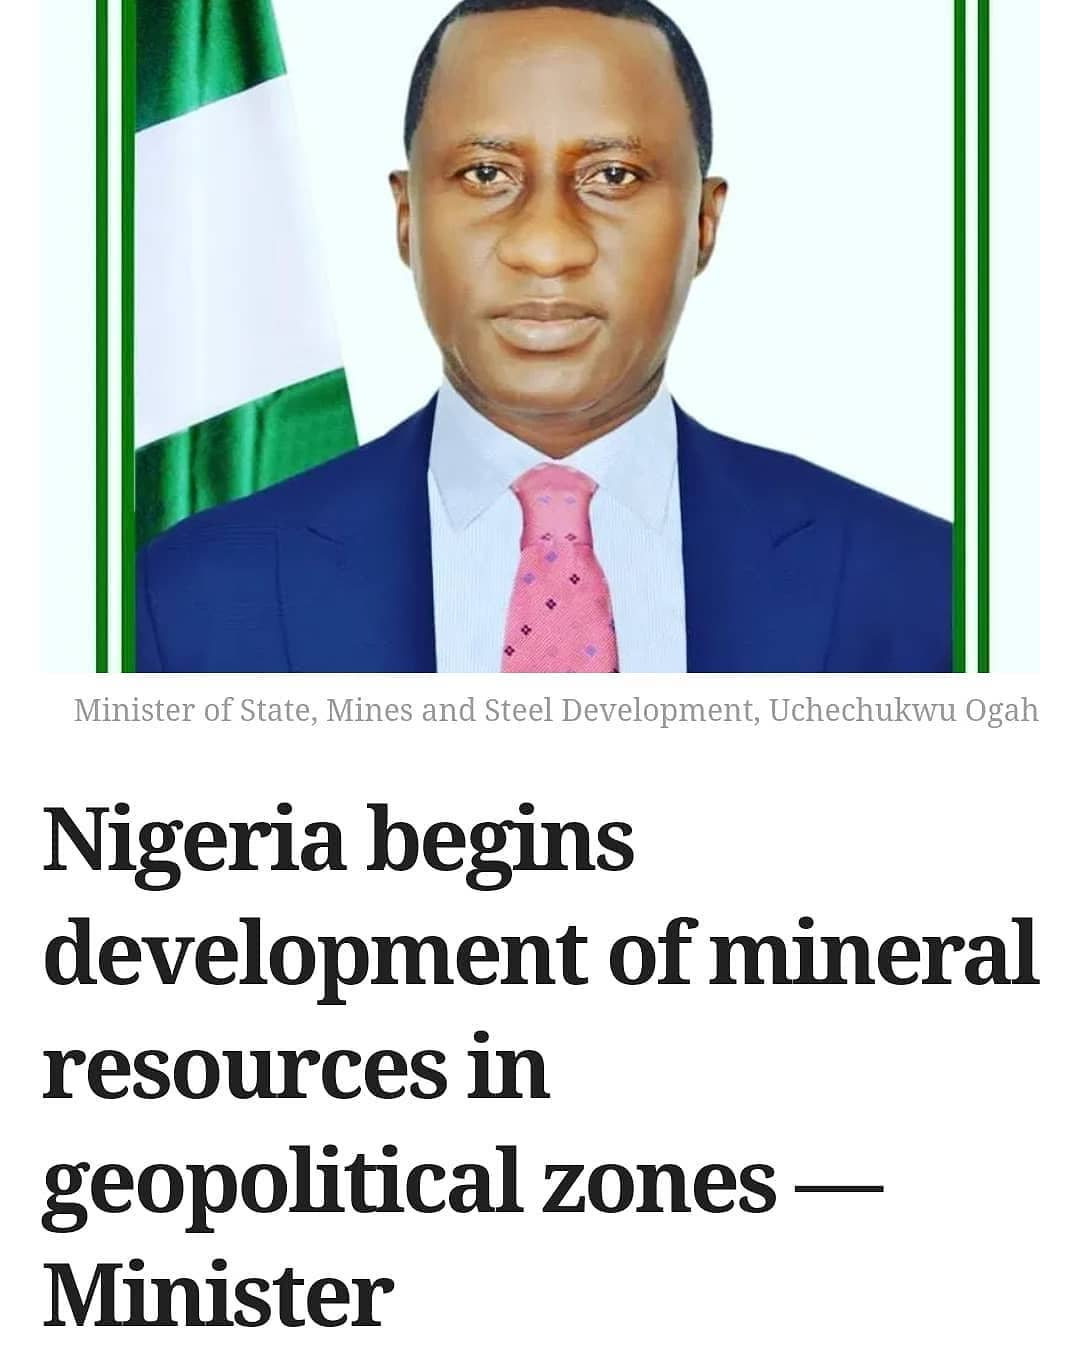 The Nigerian Government has begun the development of mineral resources across the six geopolitical zone of the country, the Minister of State, Mines and Steel Development, Uchechukwu Ogah, said Monday.  Mr Ogah disclosed this in Enugu during the closing ceremony of the 32nd Enugu International Trade Fair.  The minister said the government had already commenced developing a lead/zinc processing cluster in Ebonyi and funding the detailed exploration and development of salt and limestone deposits in the state.  According to him, the initiative is part of the government's regional mineral projects in the six geopolitical zones of the country.  Mr Ogah said the mineral projects were cited based on comparative advantage and were aimed at providing the necessary support for the economy.  He said the lead/zinc processing cluster was located in Ebonyi for the South East region in order to harness the abundant minerals in the area.  He said the exploration and development of salt and limestone facilities would also serve as input materials for local fertiliser production.  According to the minister, a barite processing cluster is being developed in Cross-River State to meet the needs of the oil/gas sector and for the export of Nigerian mined and processed barite.  He appealed to Nigerians to support the Federal Government's efforts with business ideas and strategies for sustainable rapid economic growth and development.  Mr Ogah advised the business community, including investors in the region, to tap into the Federal Government's policies aimed at diversifying the economy.  He said the Federal Government would continue to provide helpful economic innovations and investment drive platforms like the Enugu International Trade Fair.  The minister said the trade fair had done well to keep abreast of global economic challenges by bringing economic players together to showcase their products and network for opportunities.